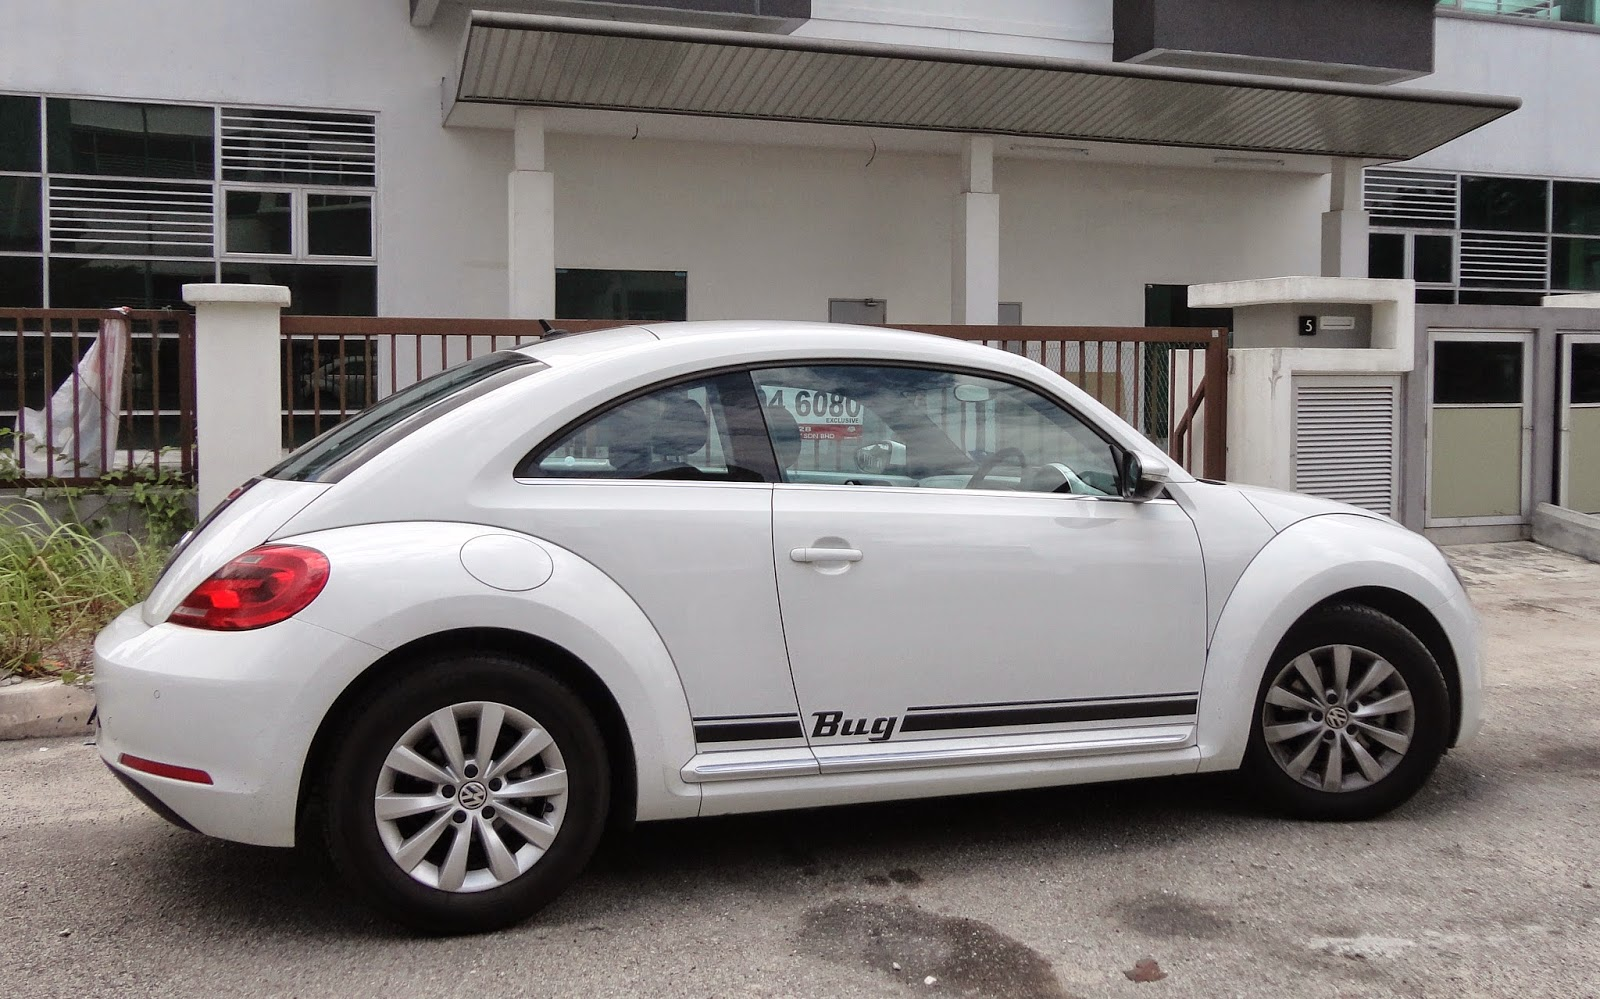 volkswagen on bug autotrader classic for sale beetle cars classics import car